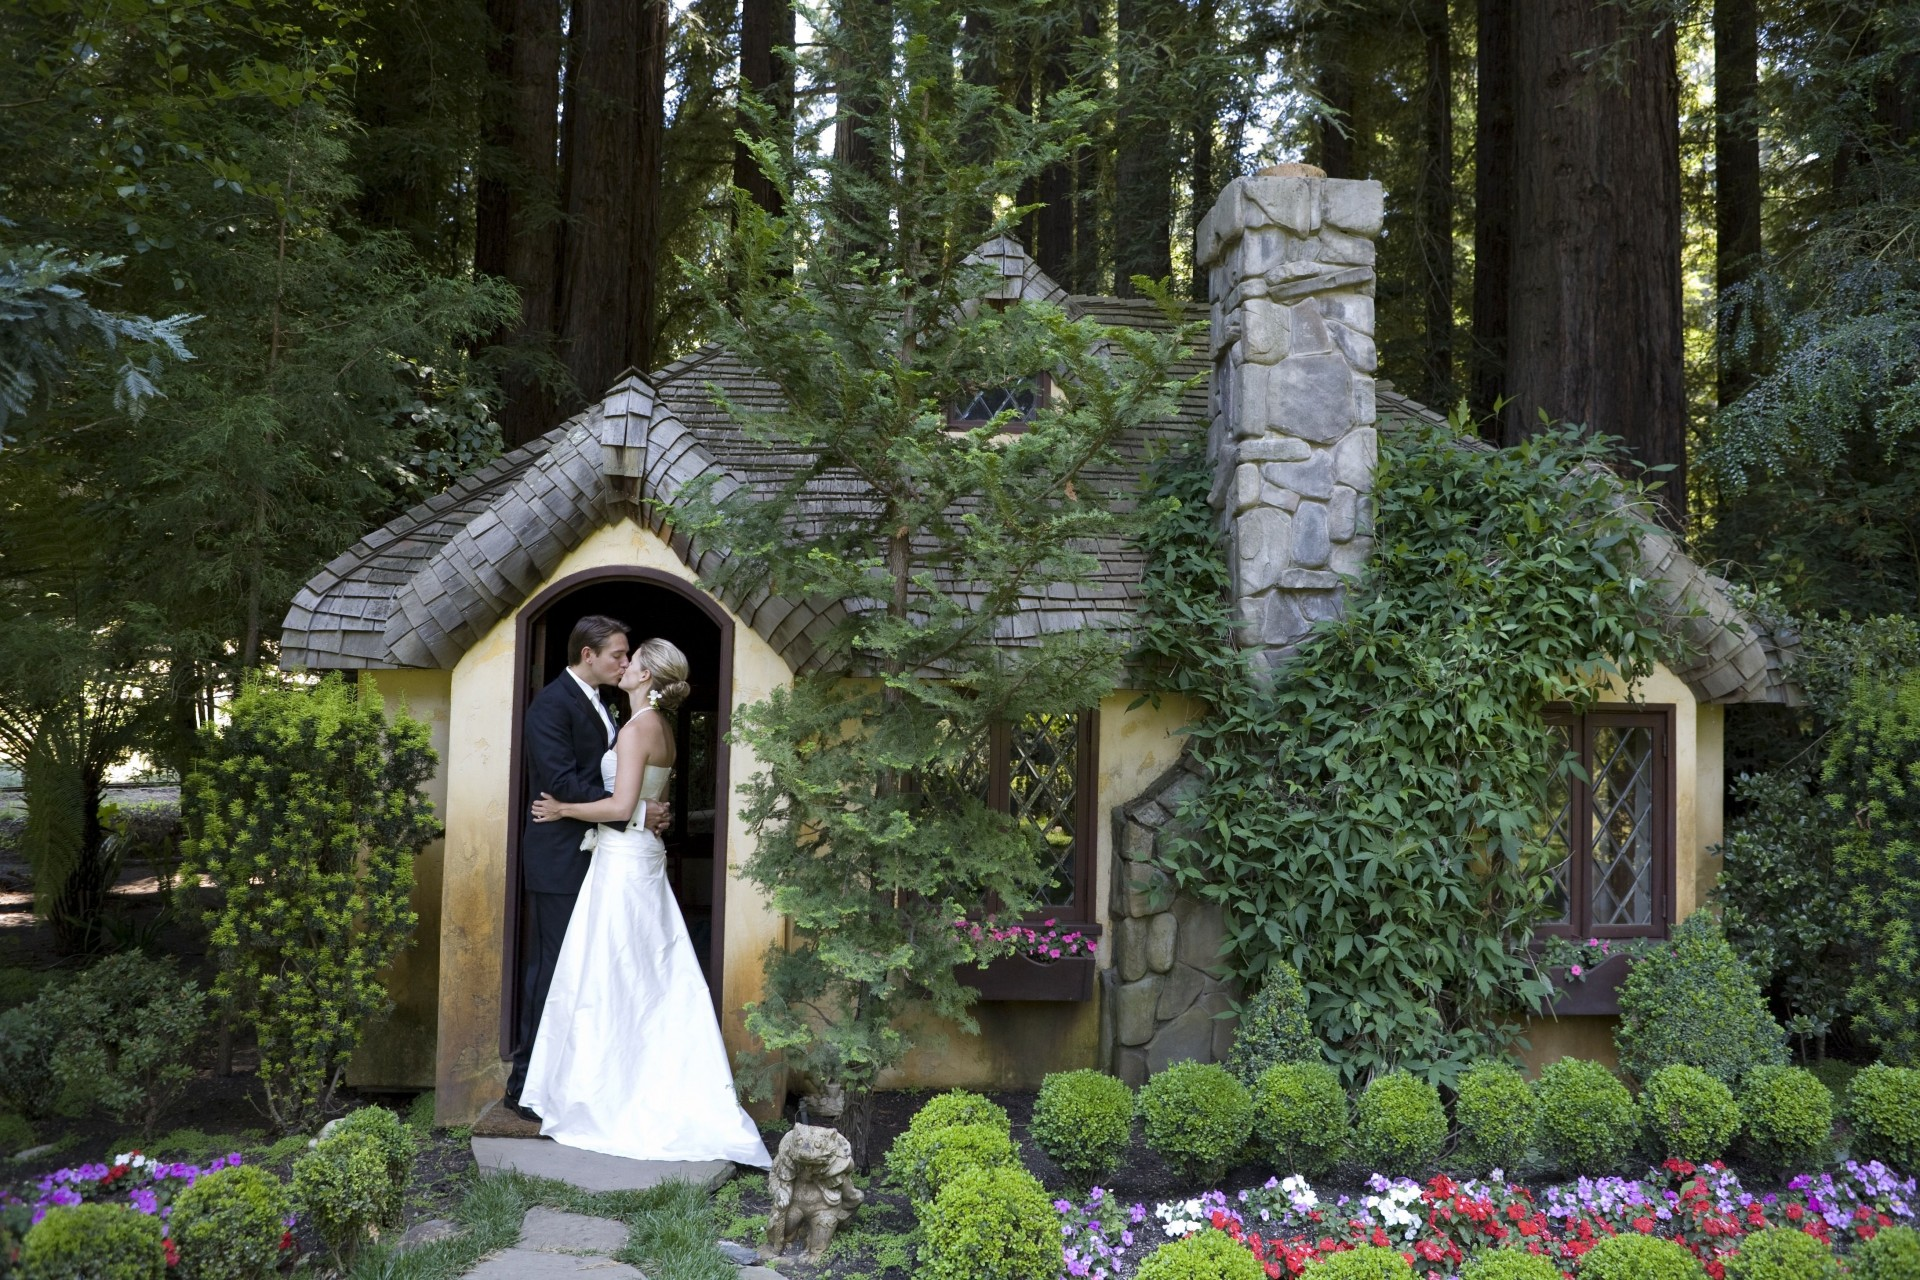 Best top luxury wedding destinations venues in california for Best wedding locations in us